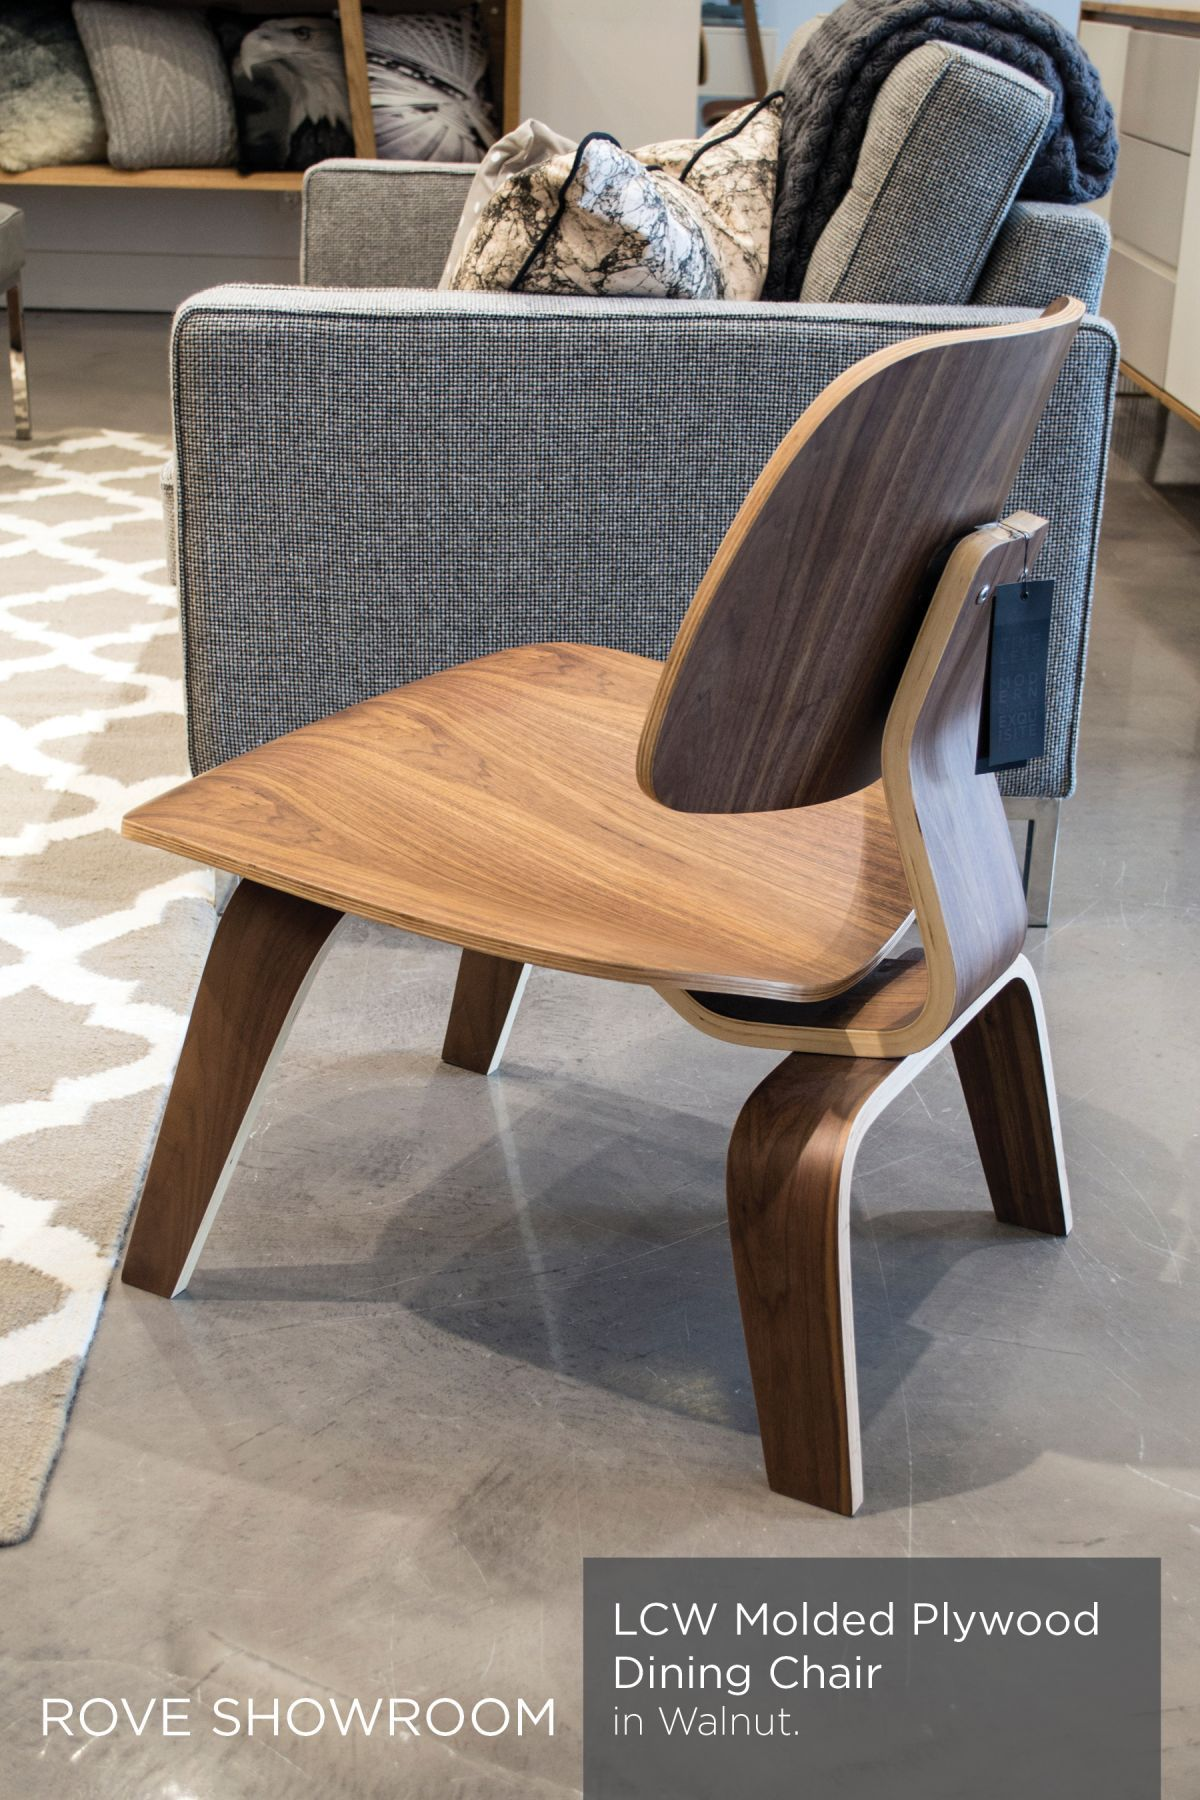 Bent plywood chair eames - Horacio Rug 6 2 X 9 5 Plywood Chairwalnut